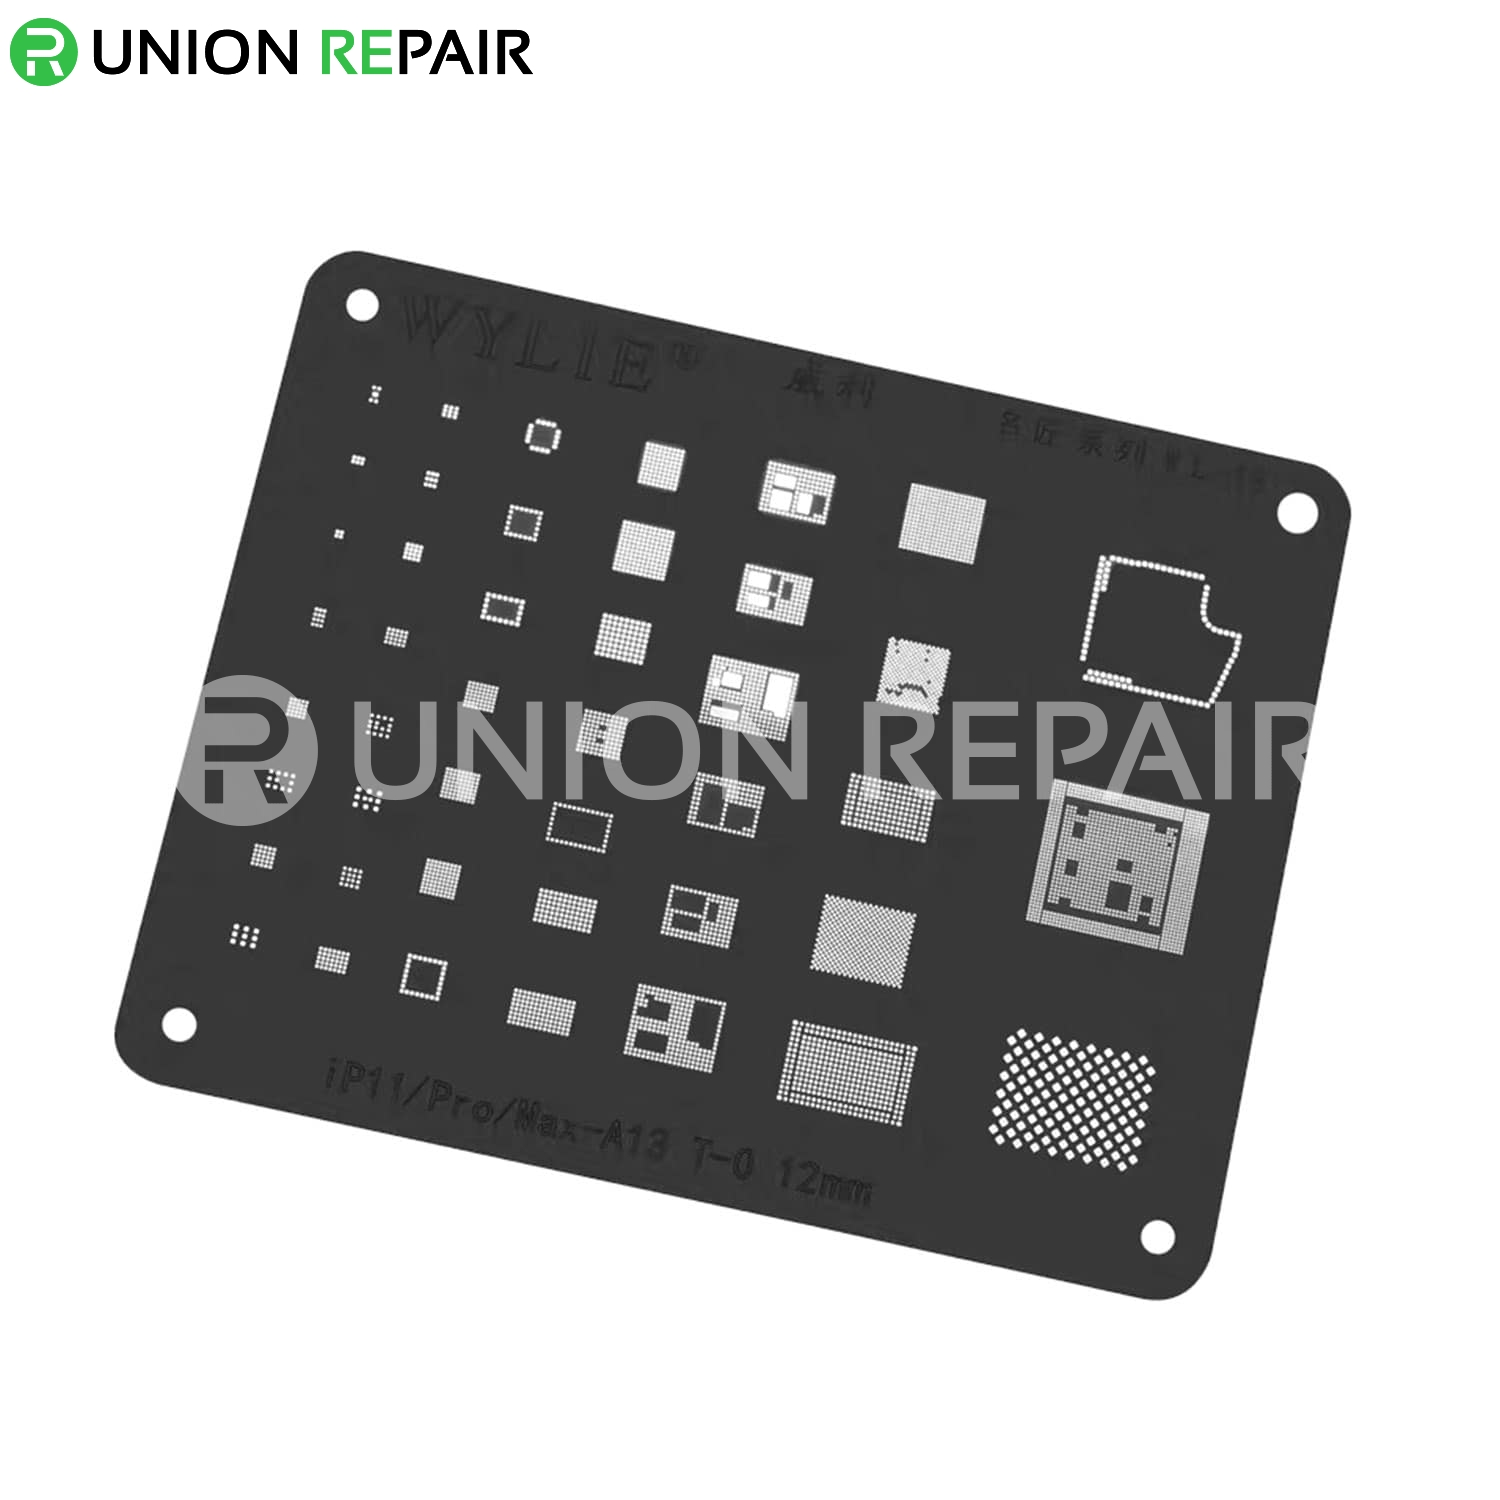 WYLIE Black BGA Reballing Stencil for iPhone 5/6/7/8/X/Xs/11/11Pro/Max, Condition: For iPhone 11/11Pro/11ProMax